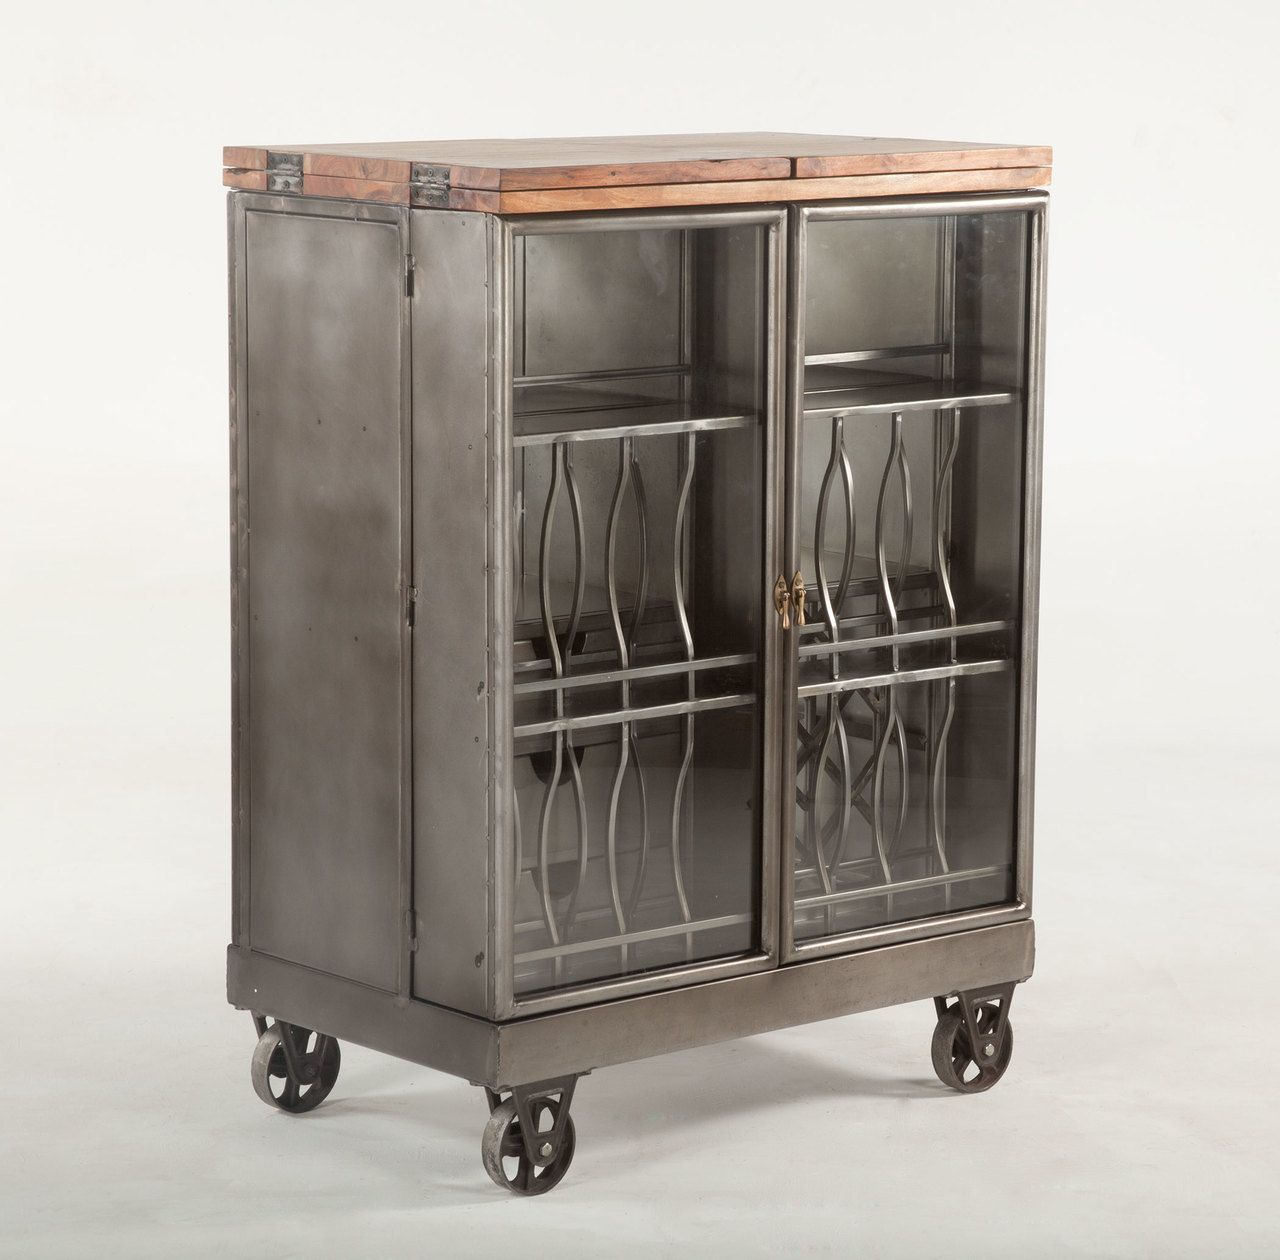 Steampunk Industrial Steel And Glass Bar Cart Cabinet In 2020 Bar Furniture Vintage Industrial Furniture Glass Bar Cart